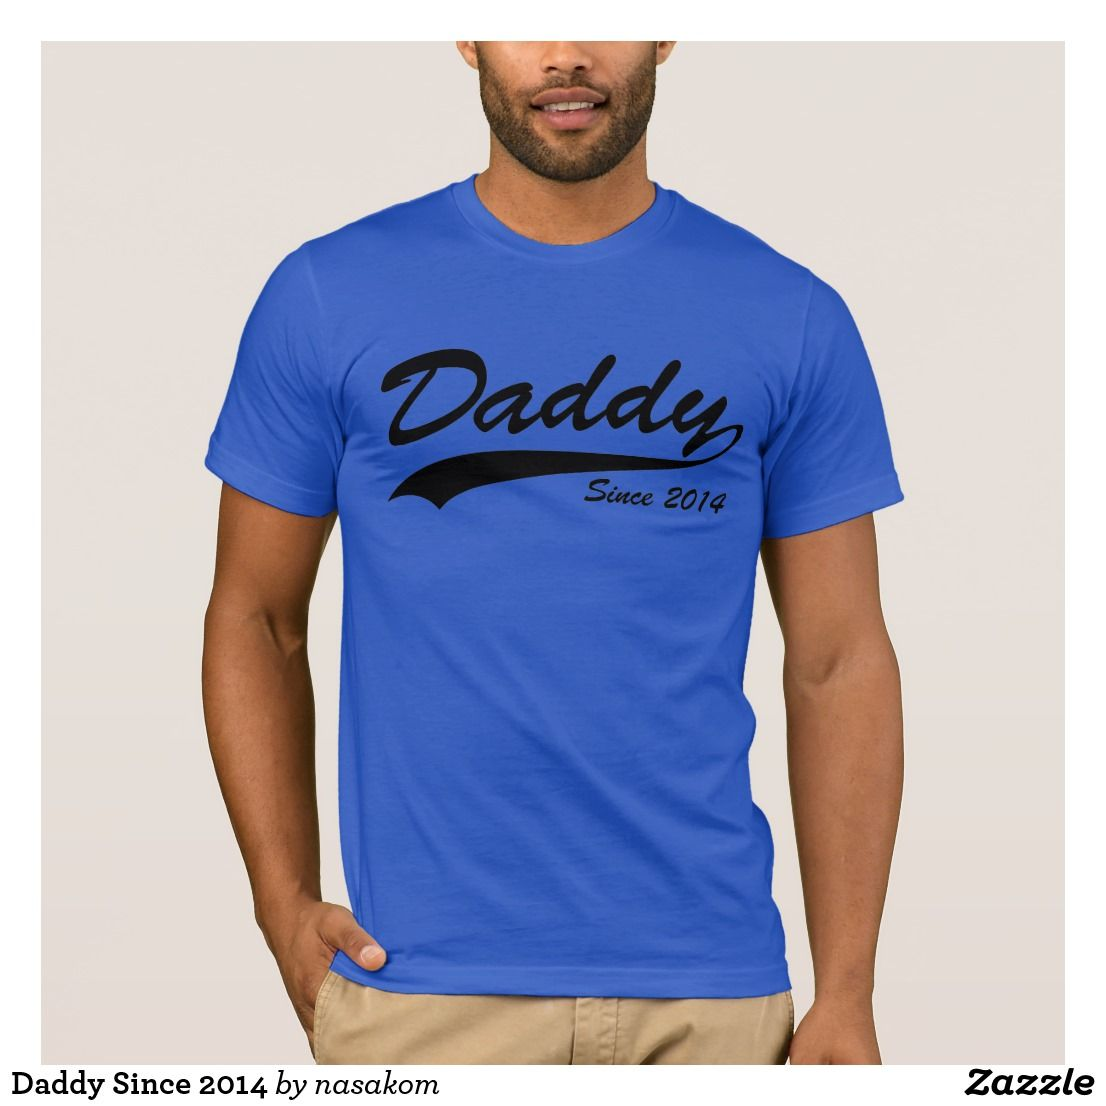 745a34e4320f Daddy Since 2014 T-Shirt  mothersday  mothersday2019  mothersdaygifts   mothersdayideas